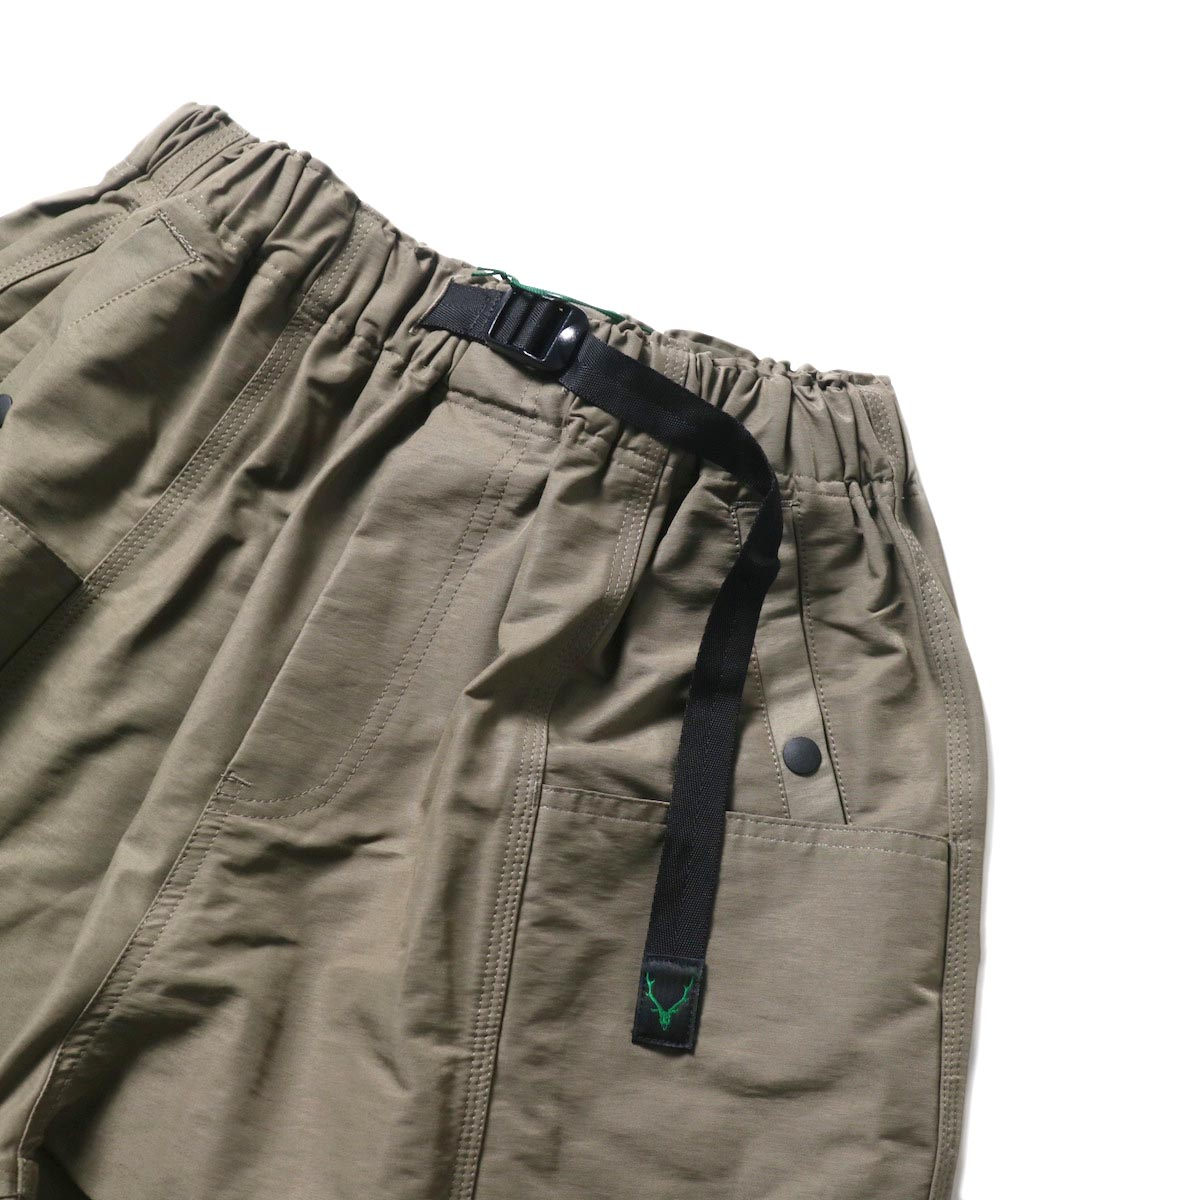 South2 West8 / BELTED C.S. SHORT - C/N GROSGRAIN (Taupe)ベルト